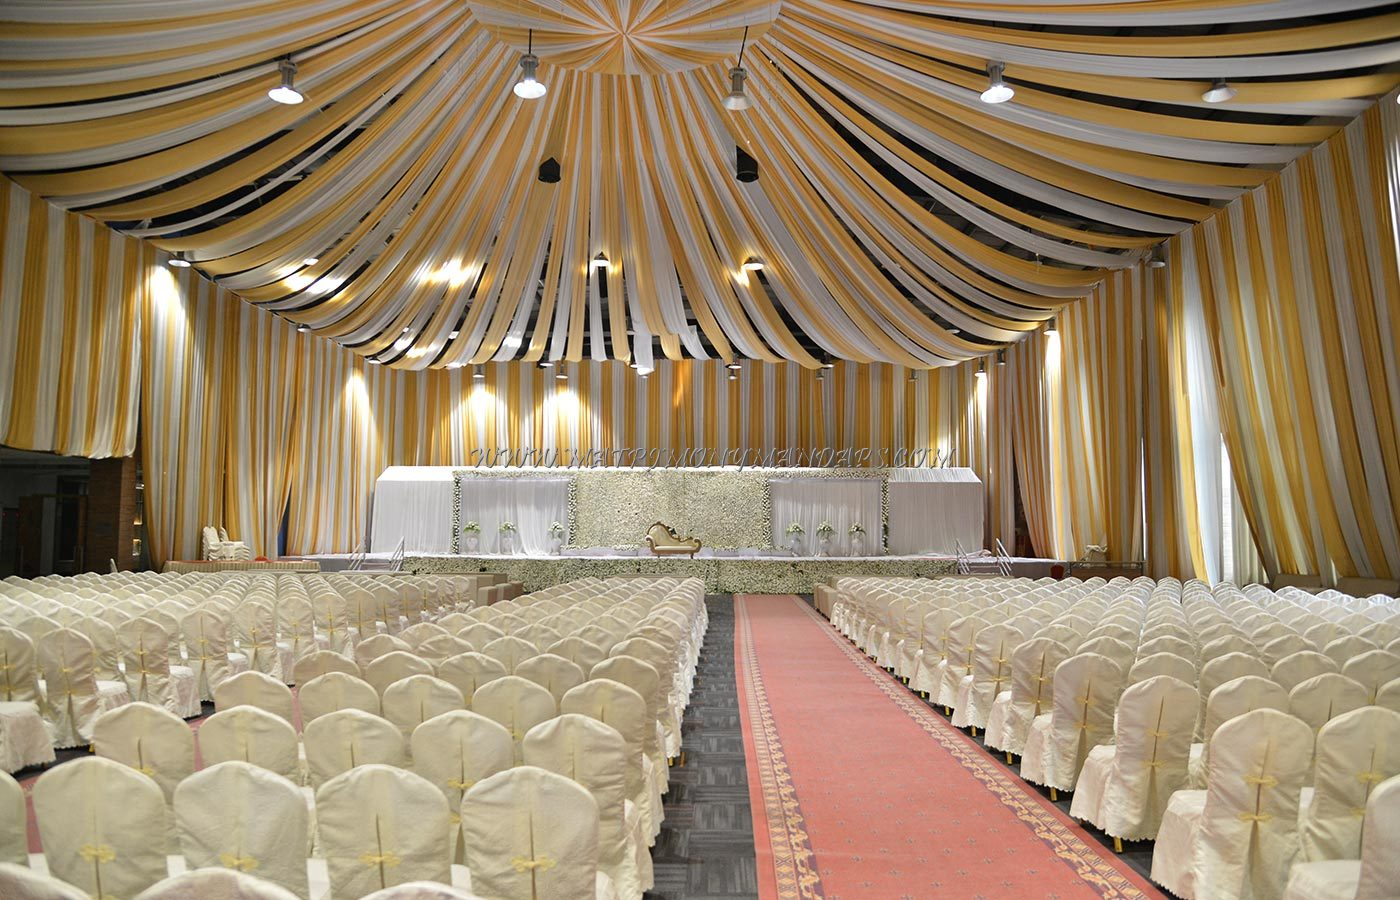 Find the availability of the Shree Convention Hall 2 (A/C) in Kompally, Hyderabad and avail special offers